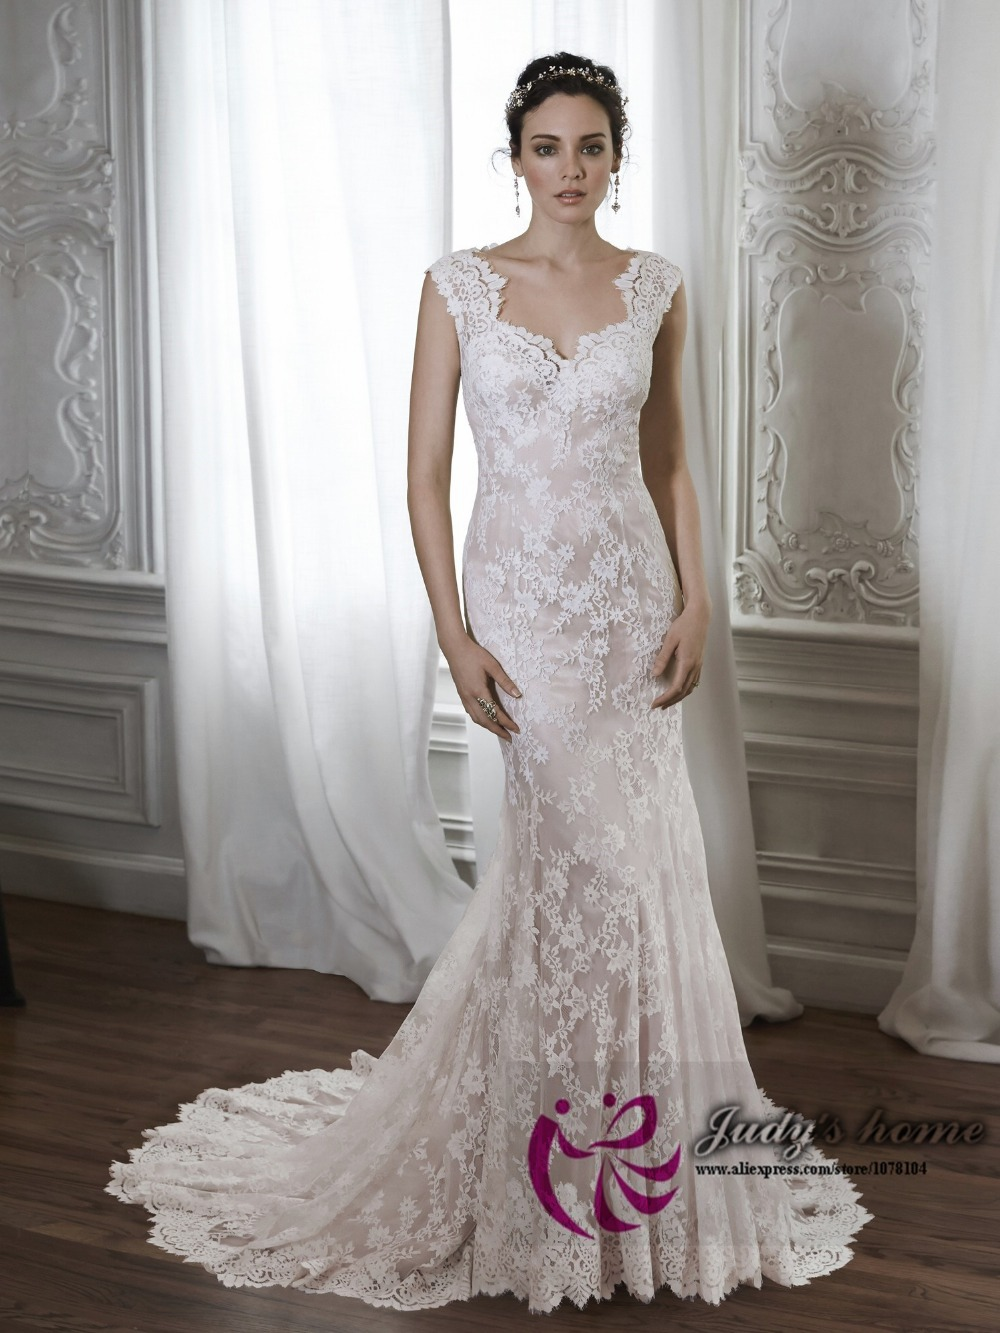 Elegant Sweetheart Neck Cap Sleeve Lace Mermaid Wedding Dress Australia White And Champagne Colored In Dresses From